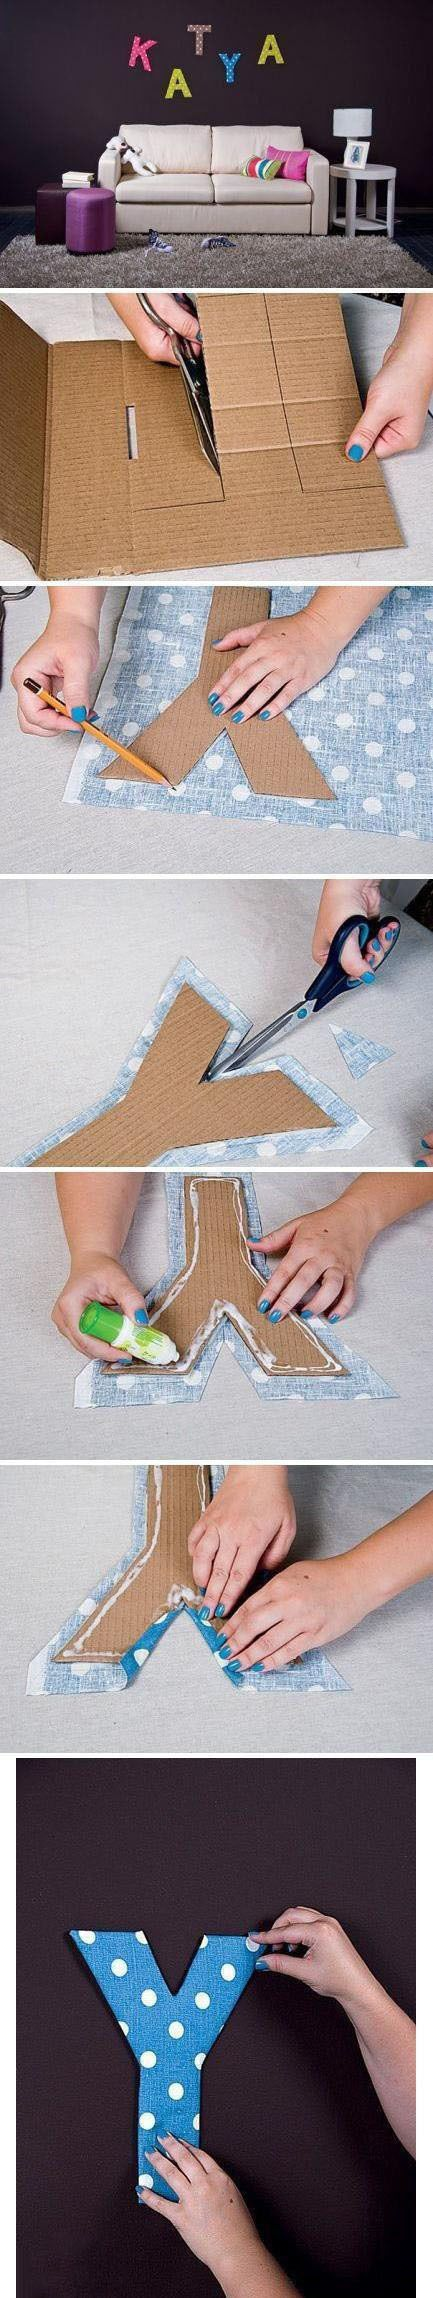 Diy Projects: Fabric and Cardboard Wall Letters DIY----could also make smaller letters